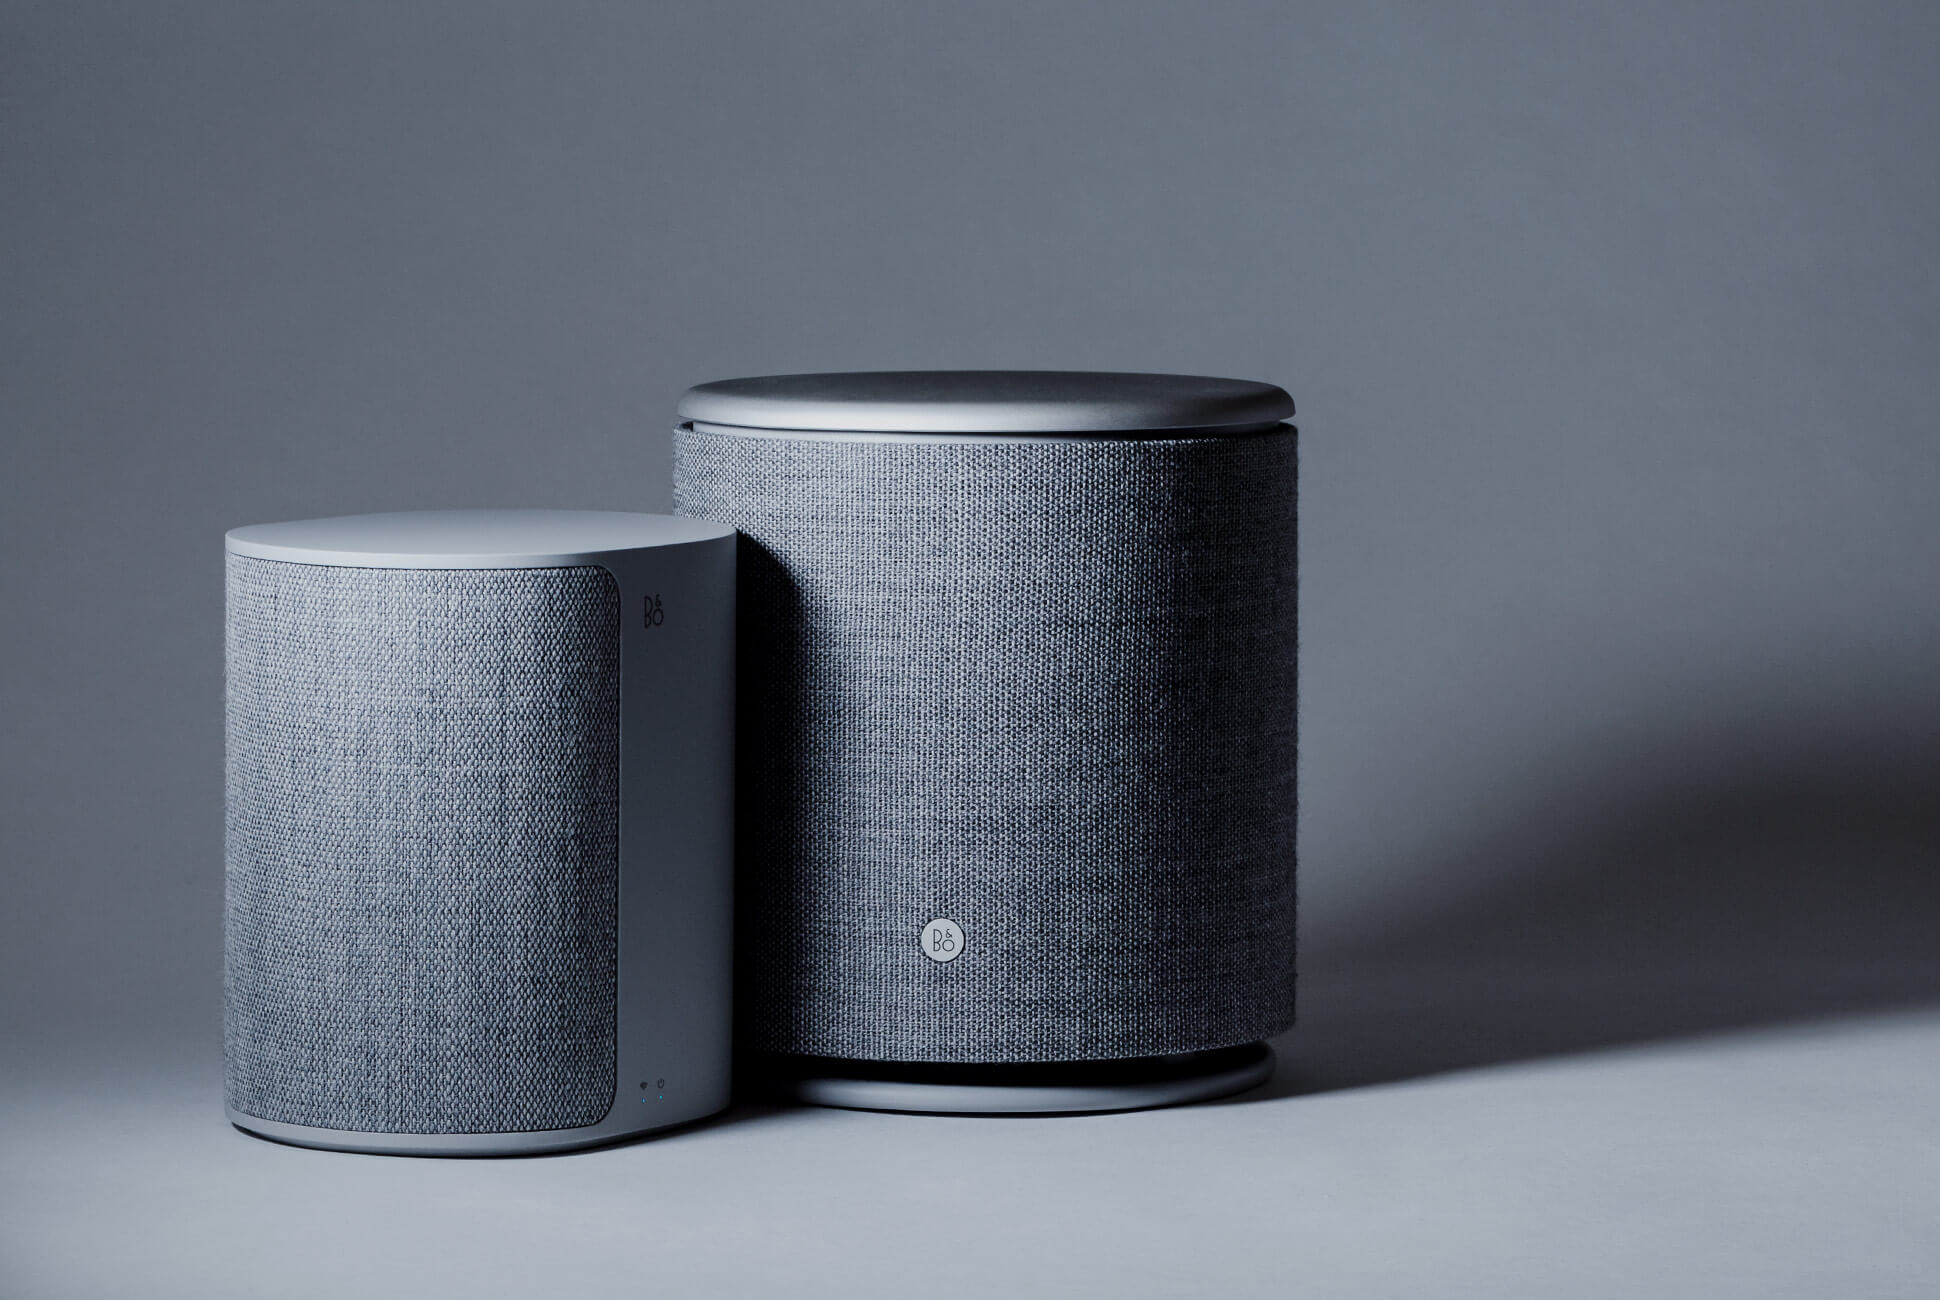 Bang & Olufsen Altoparlante wireless Beoplay M5: Offerte, Opinioni, Recensione